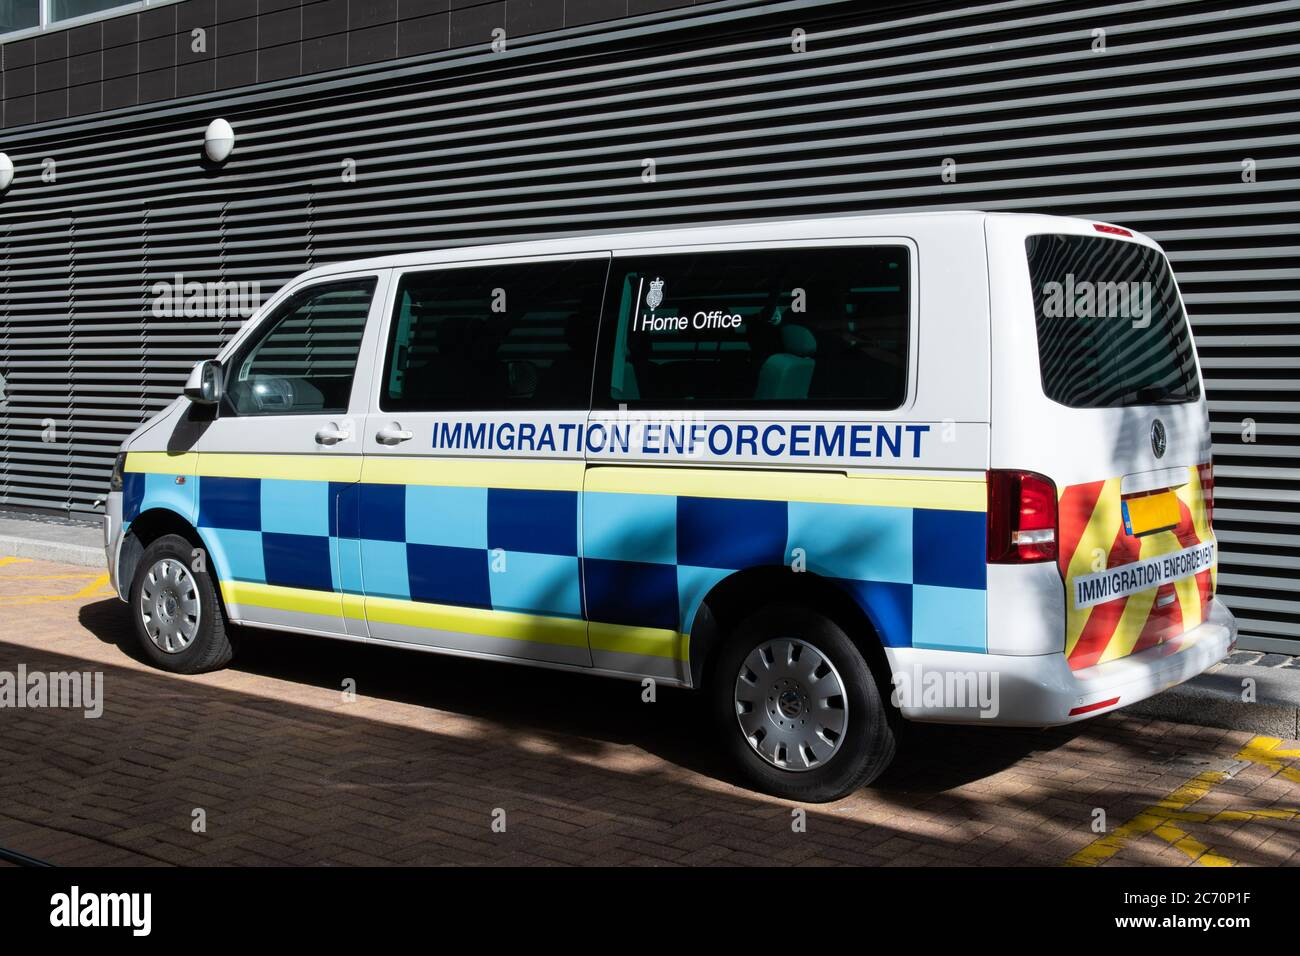 Van of UK Home Office for Immigration Enforcement. Illegal immigrants. Law and order. Stock Photo